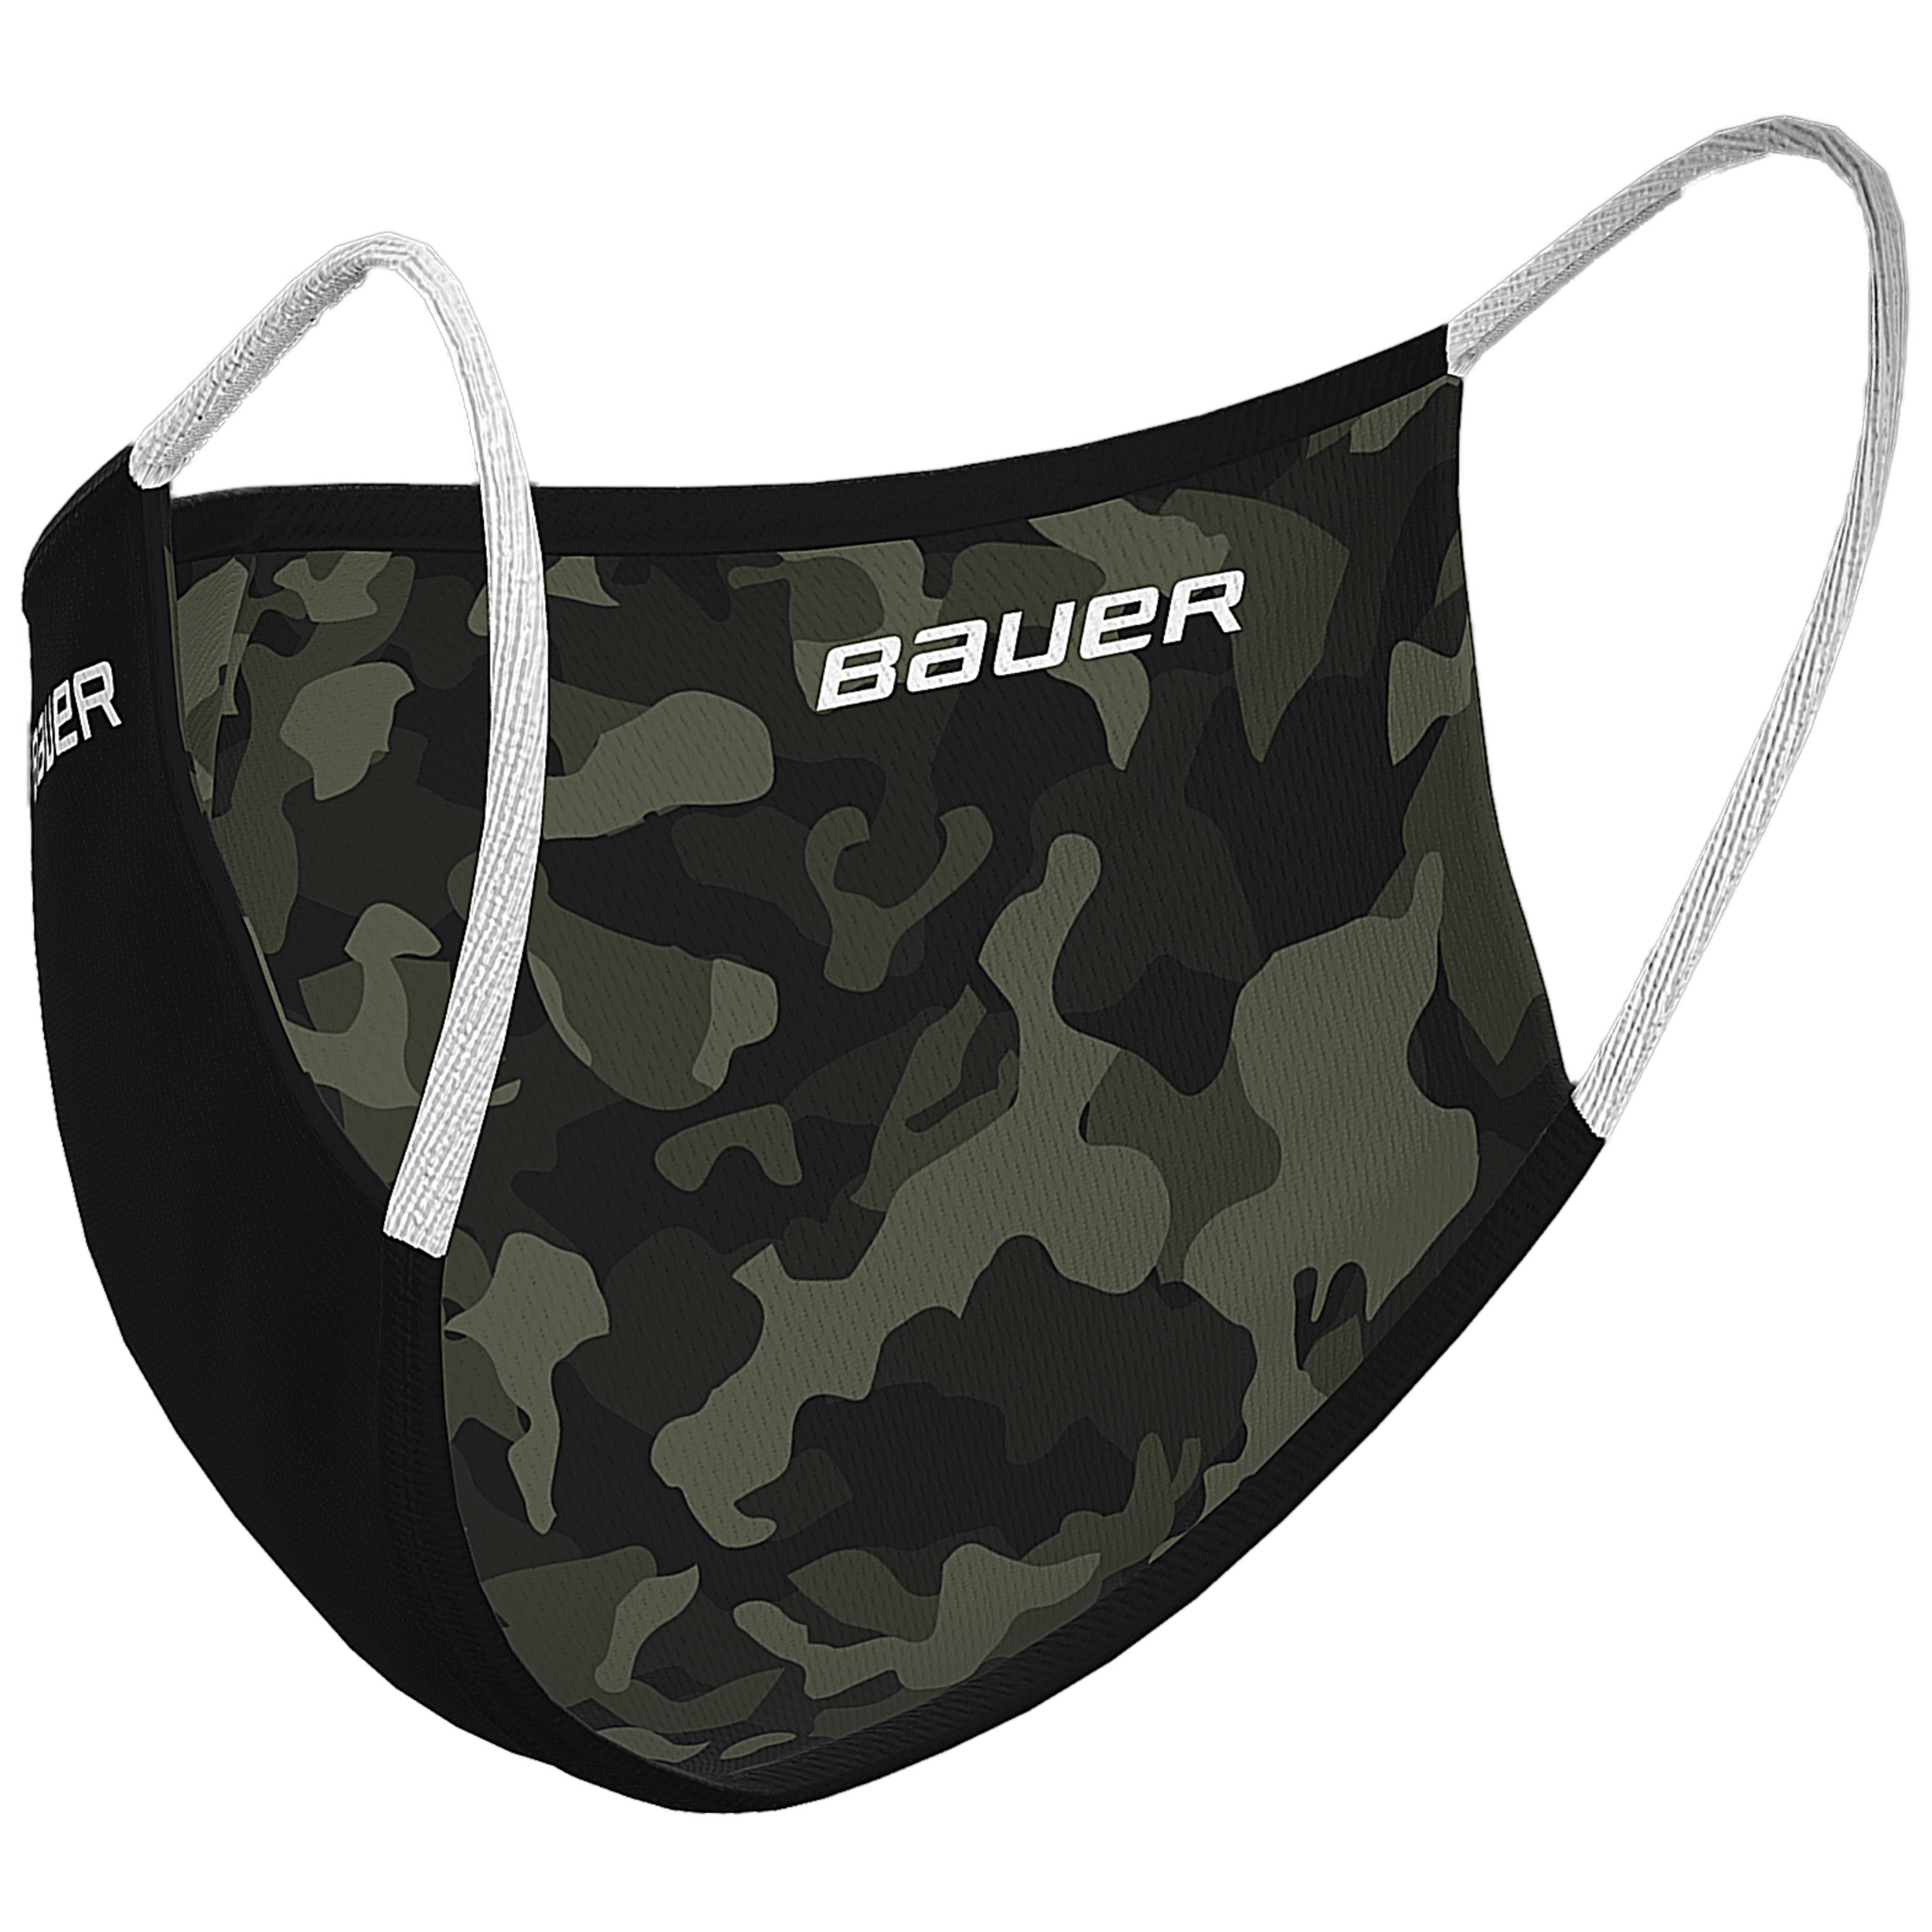 Bauer Reversible Fabric Face Mask Black/Camo,Black/Camo,medium